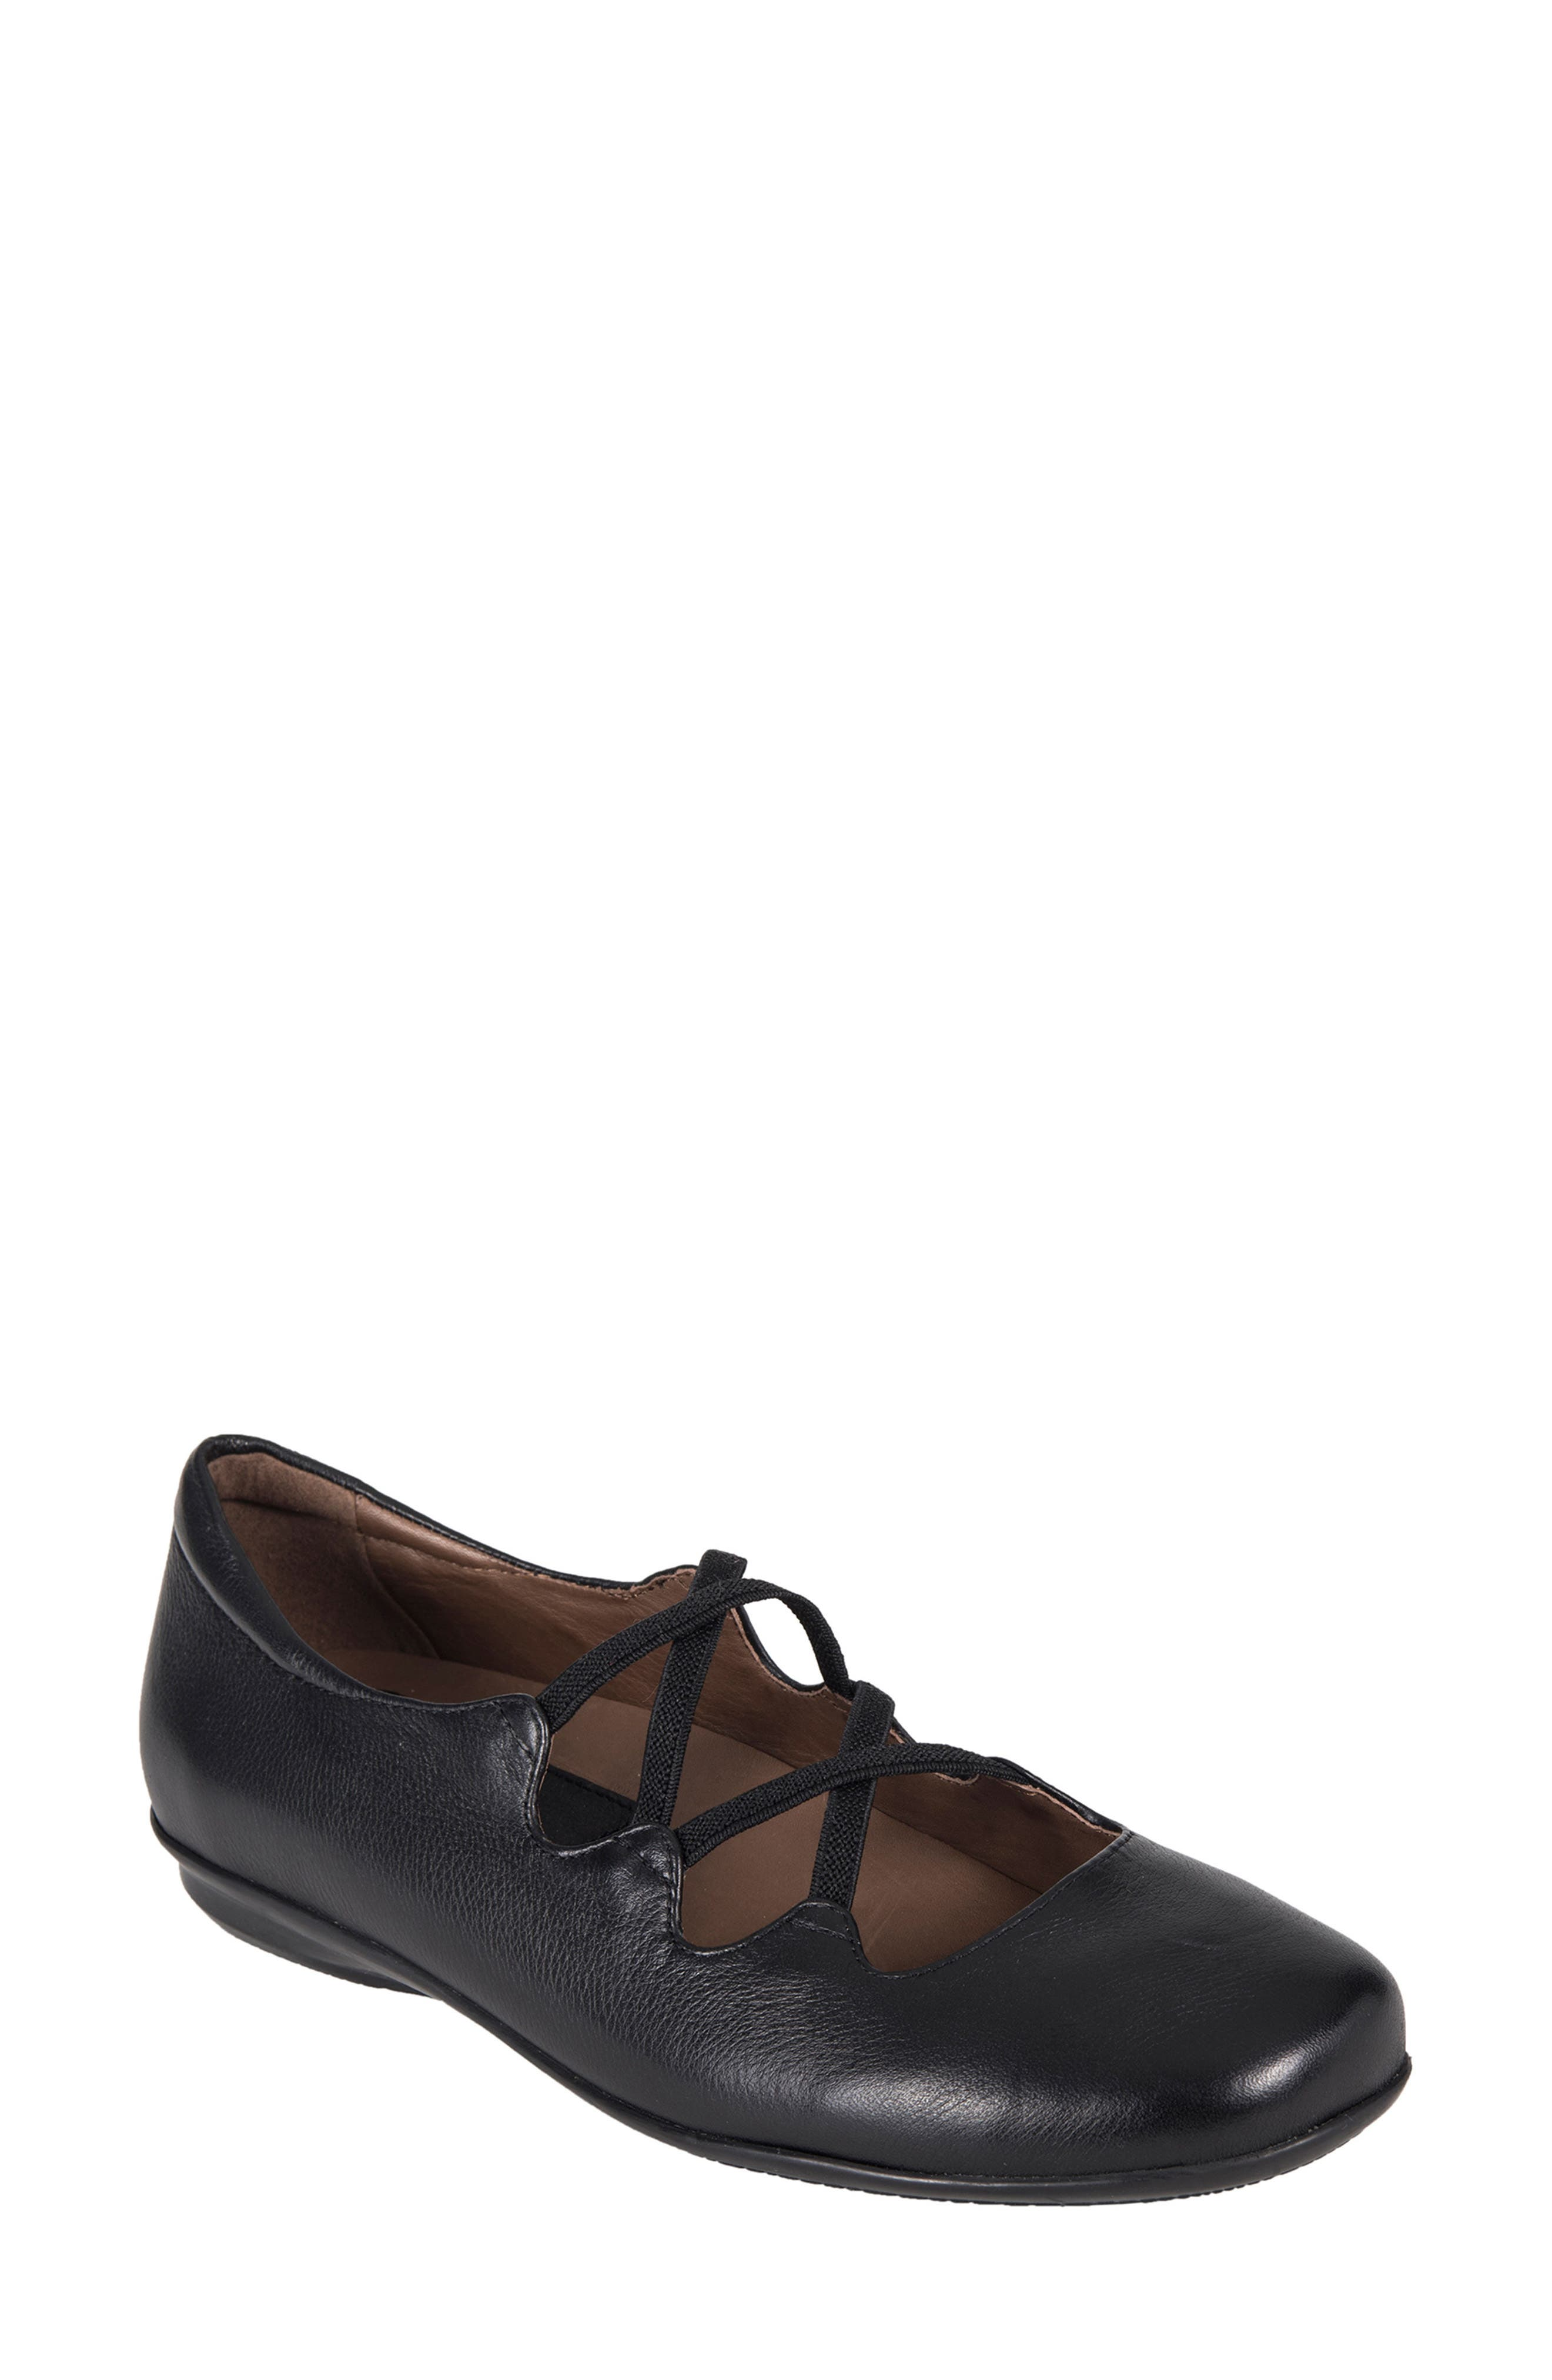 Alternate Image 1 Selected - Earthies® Clare Flat (Women)